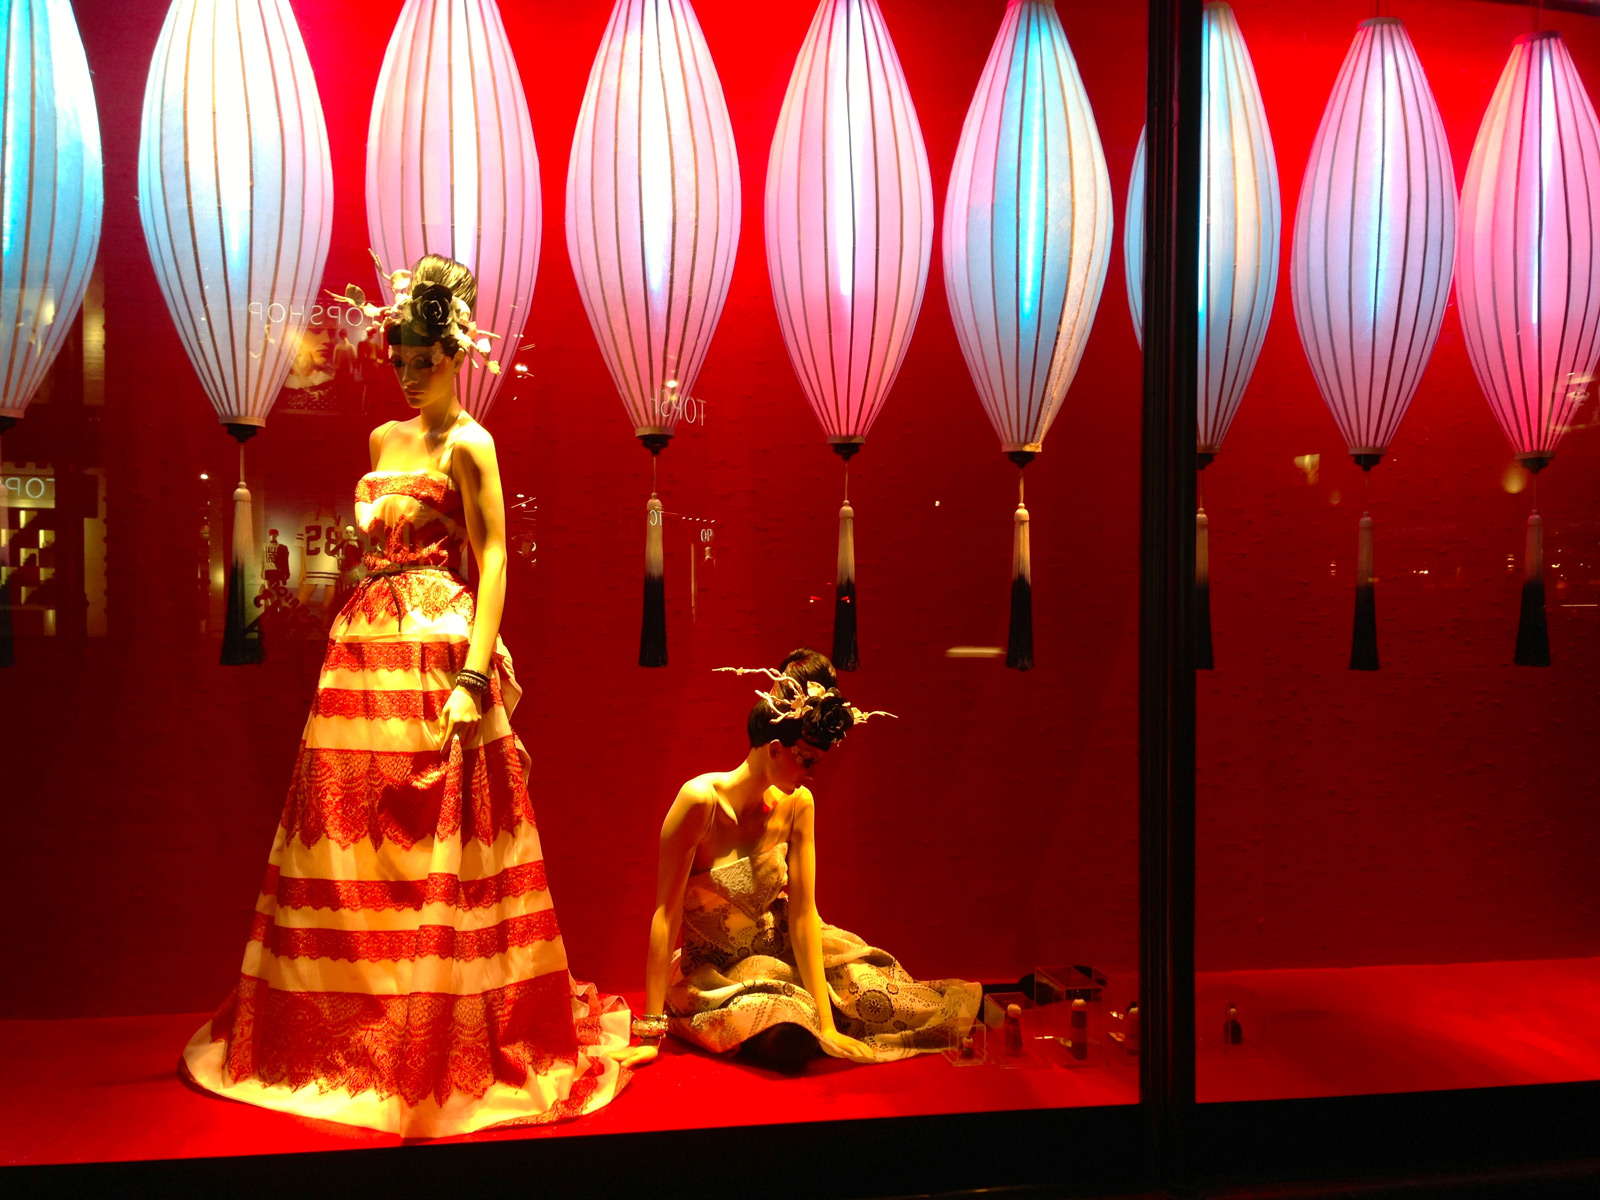 The clothes and the colored lanterns from this window display are indicating that it's about the Chinese New Year's Eve.